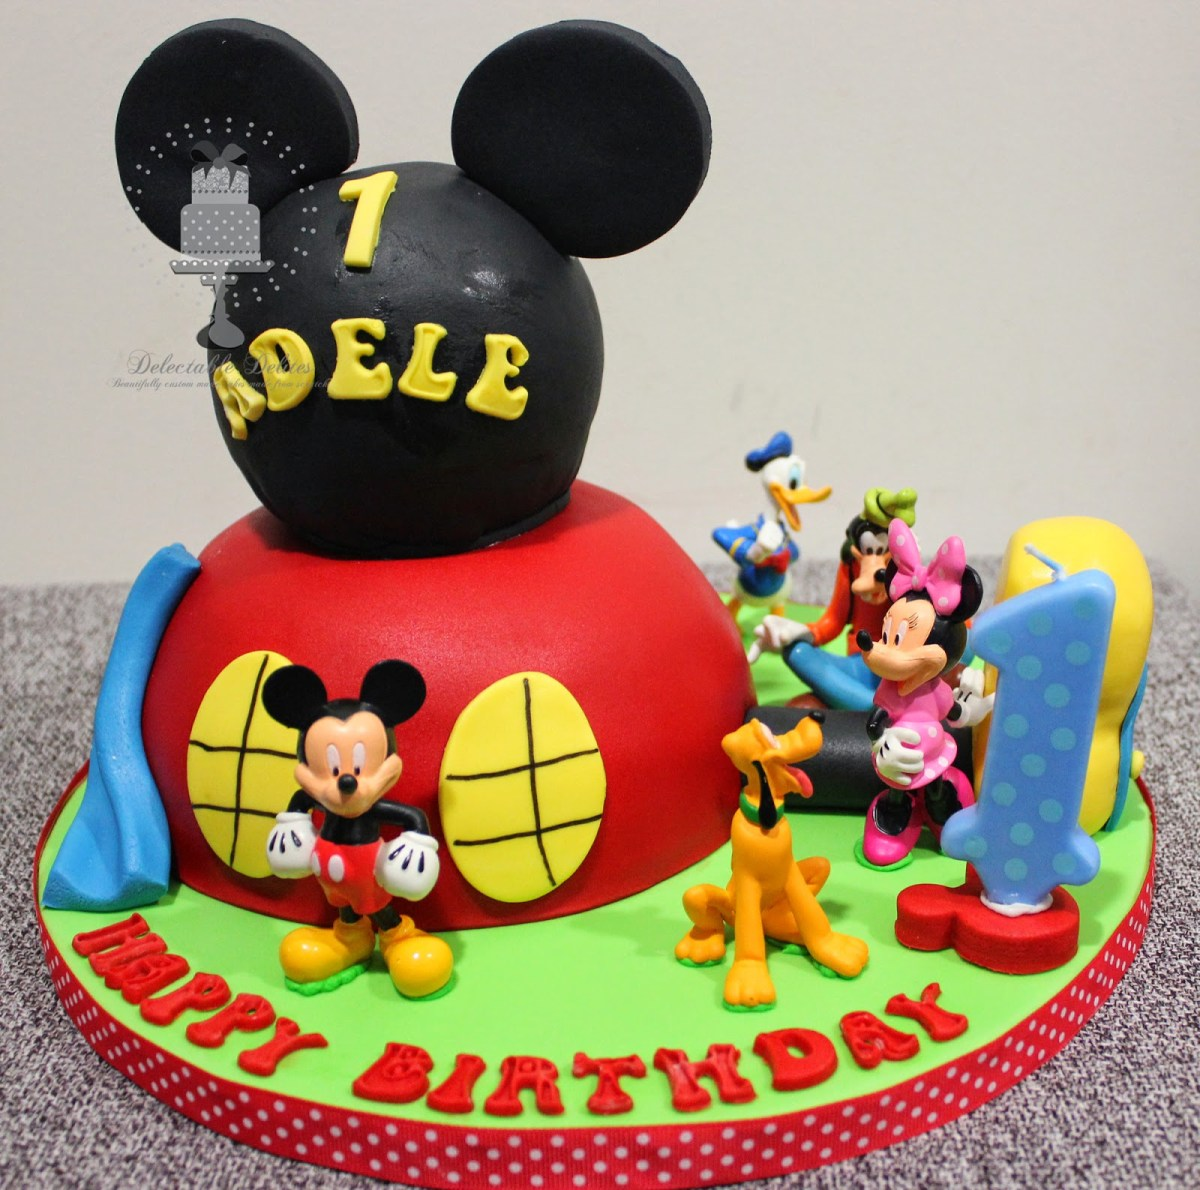 Mickey Mouse Clubhouse Birthday Cake Delectable Delites Mickey Mouse Clubhouse Cake For Adeles 1st Birthday